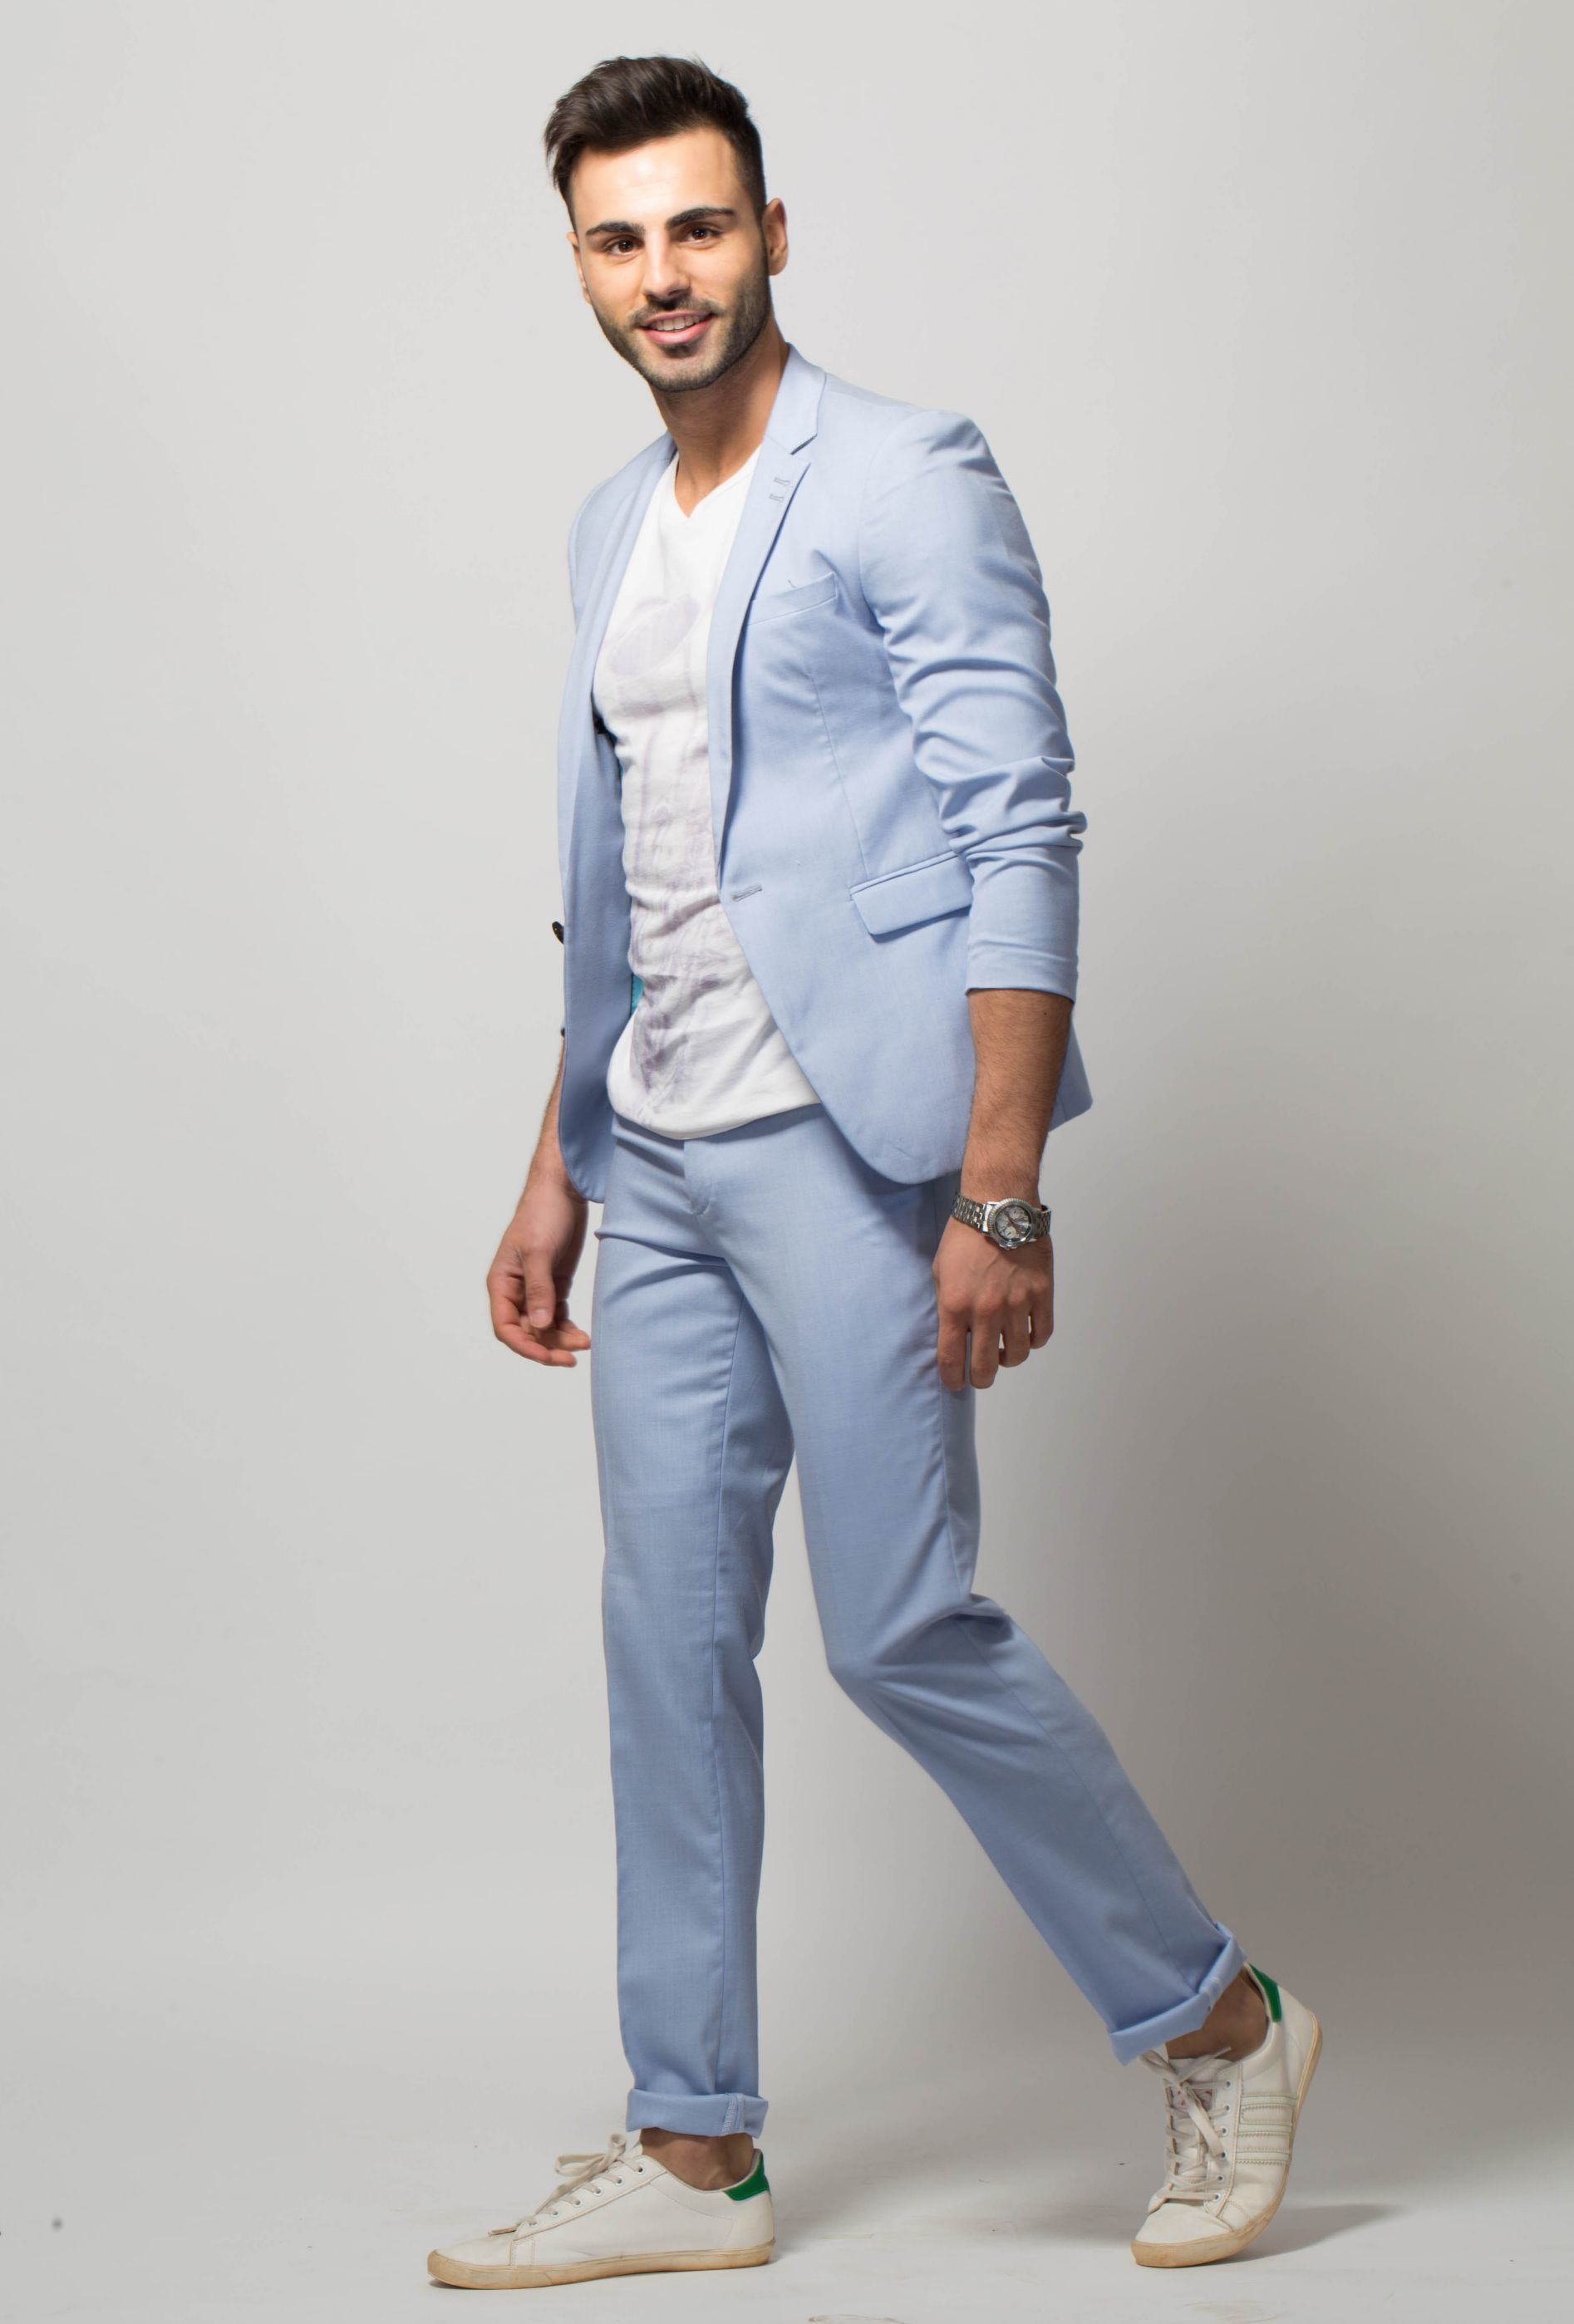 Light Blue Suit | Men's Fashion